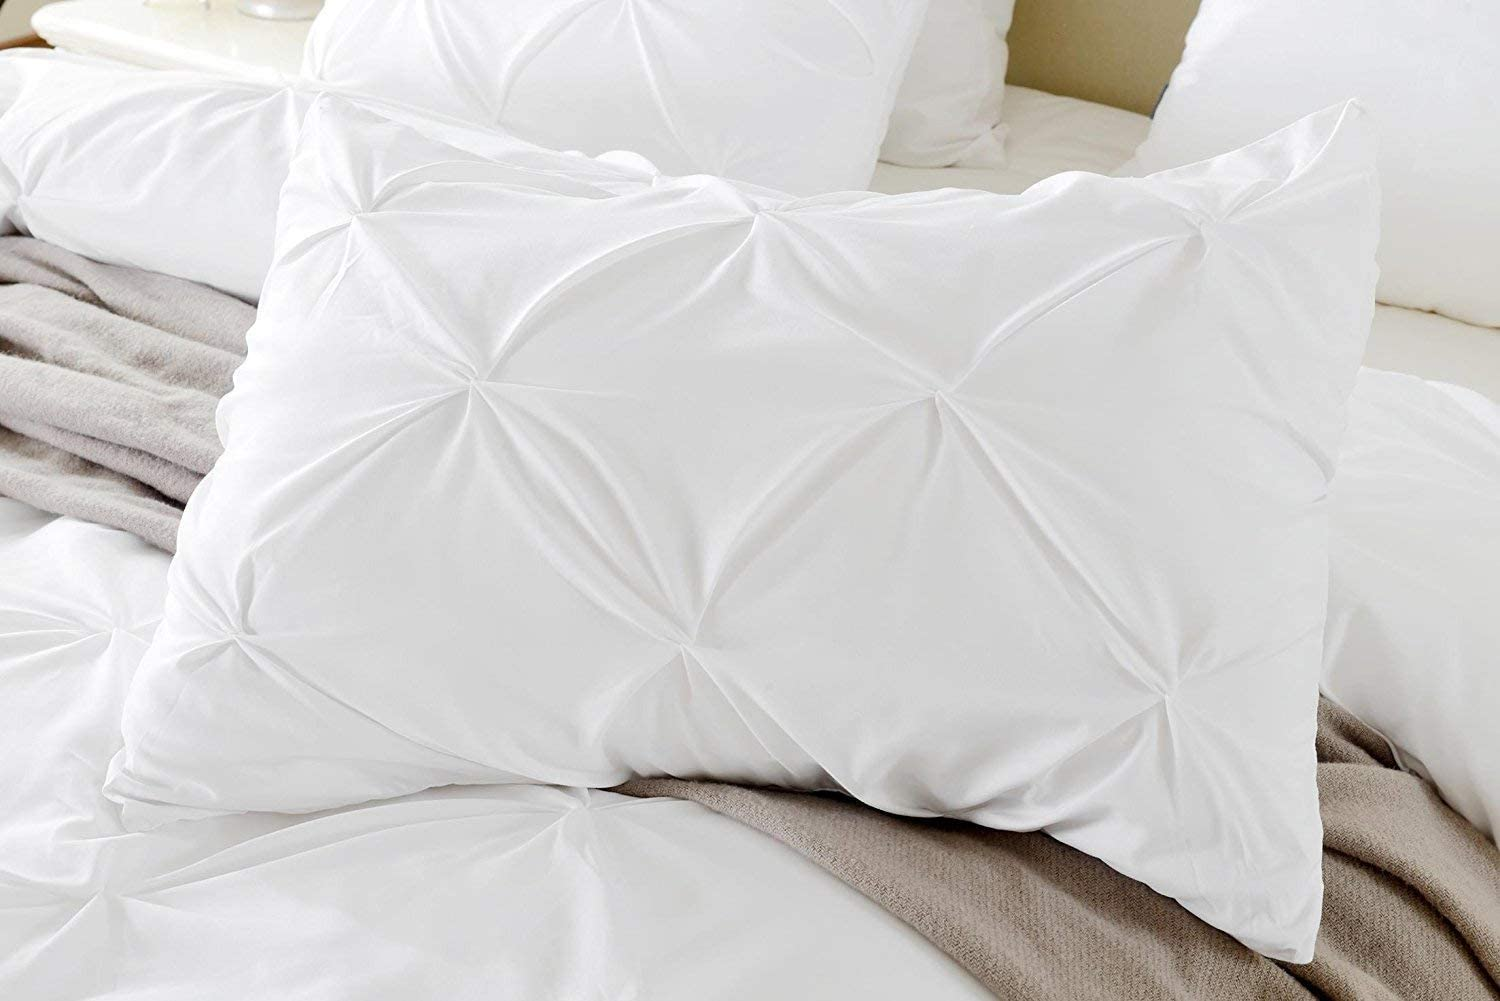 Pinch Pleated Queen Pillow Shams Set Thread Luxu 1 year warranty Max 75% OFF Count 2- of 600